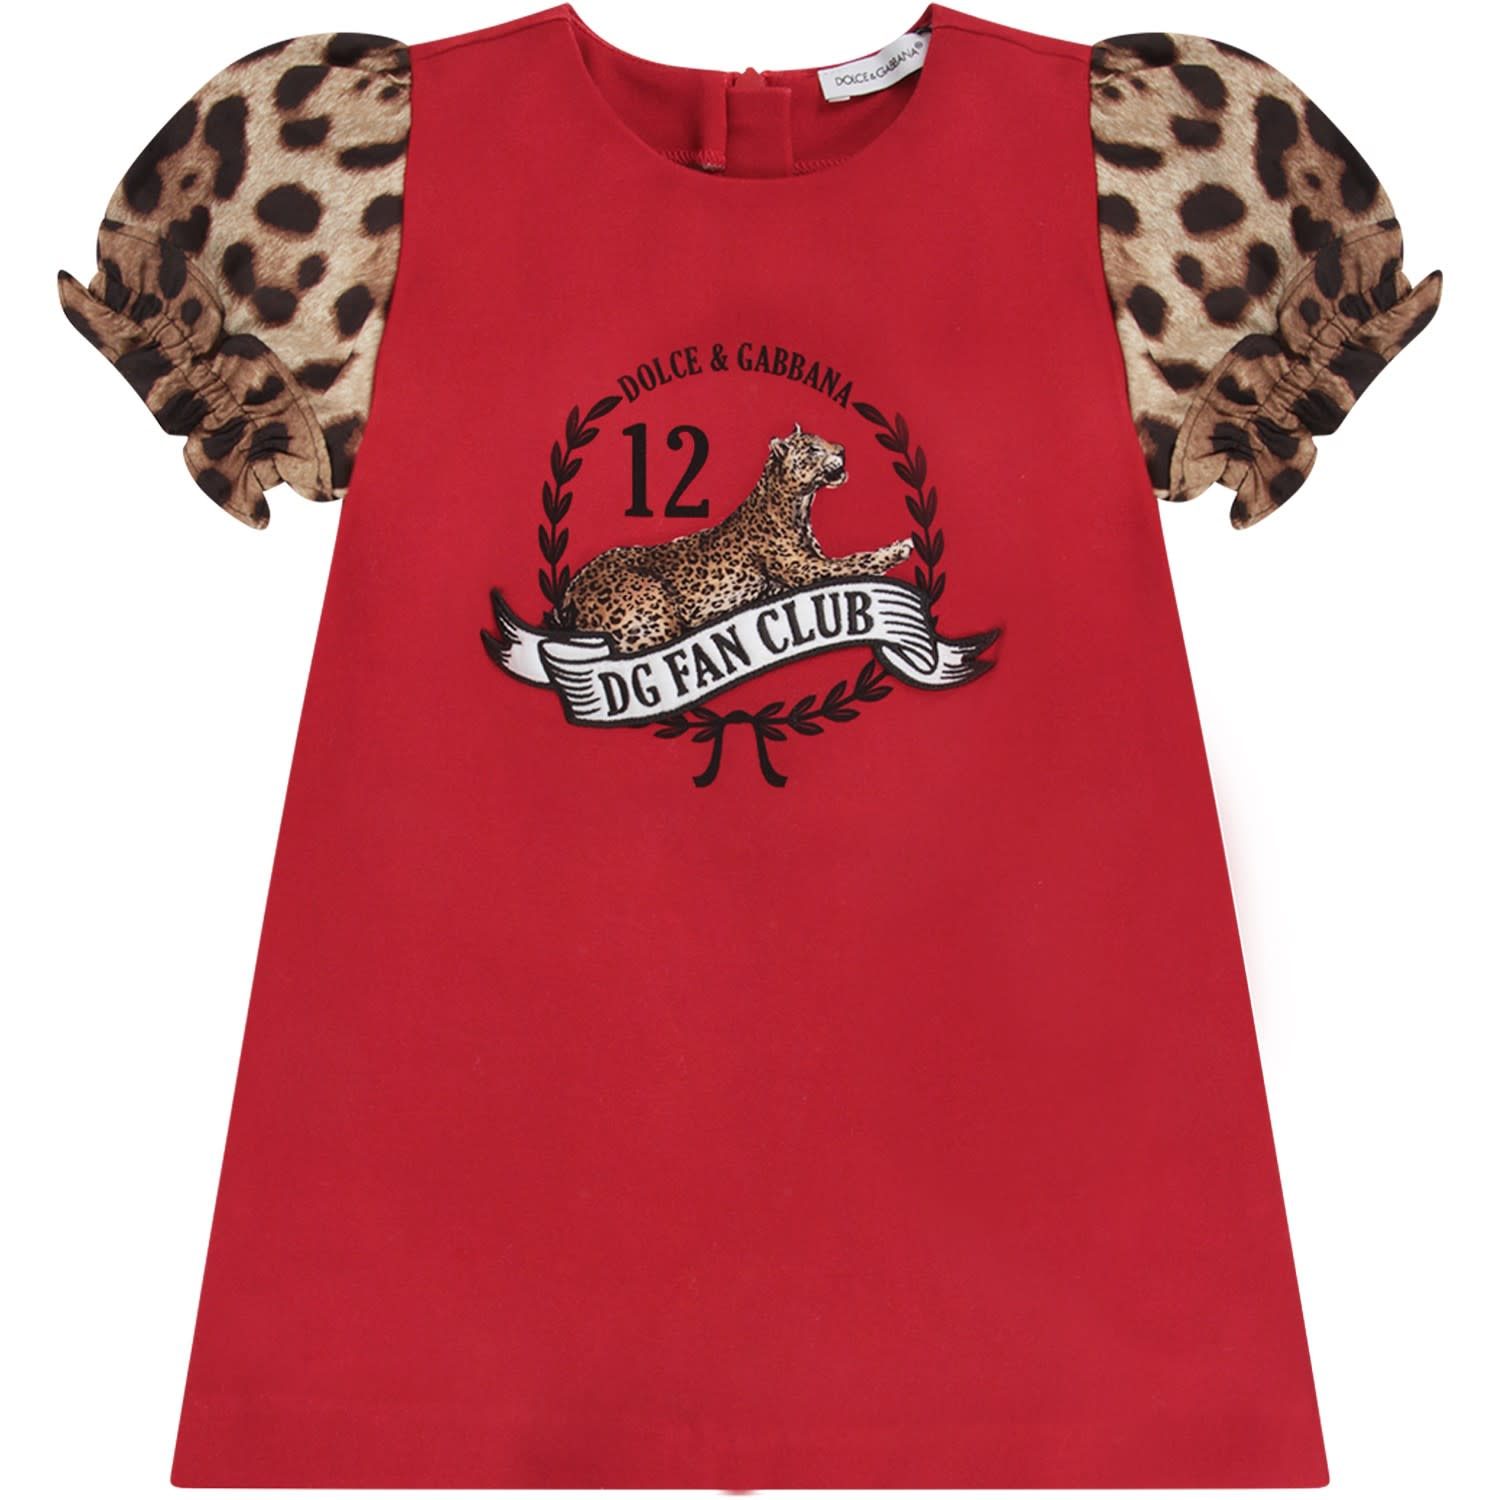 Dolce & Gabbana Red Babygirl Dress With Leopard